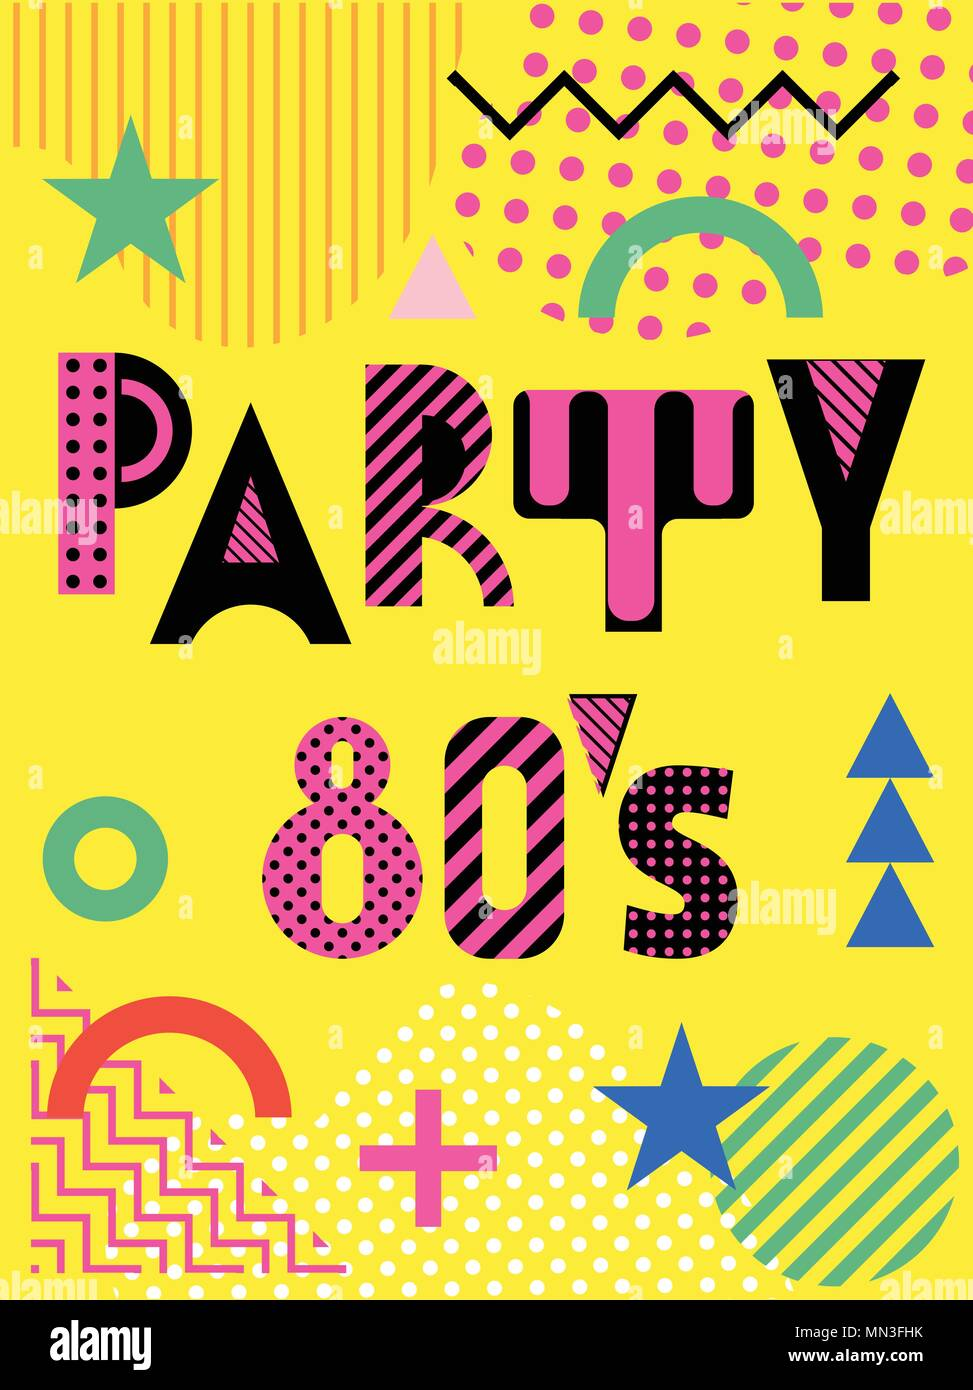 Banner for a party in the style of the eighties. Trendy geometric font in memphis style of 80s-90s. - Stock Vector